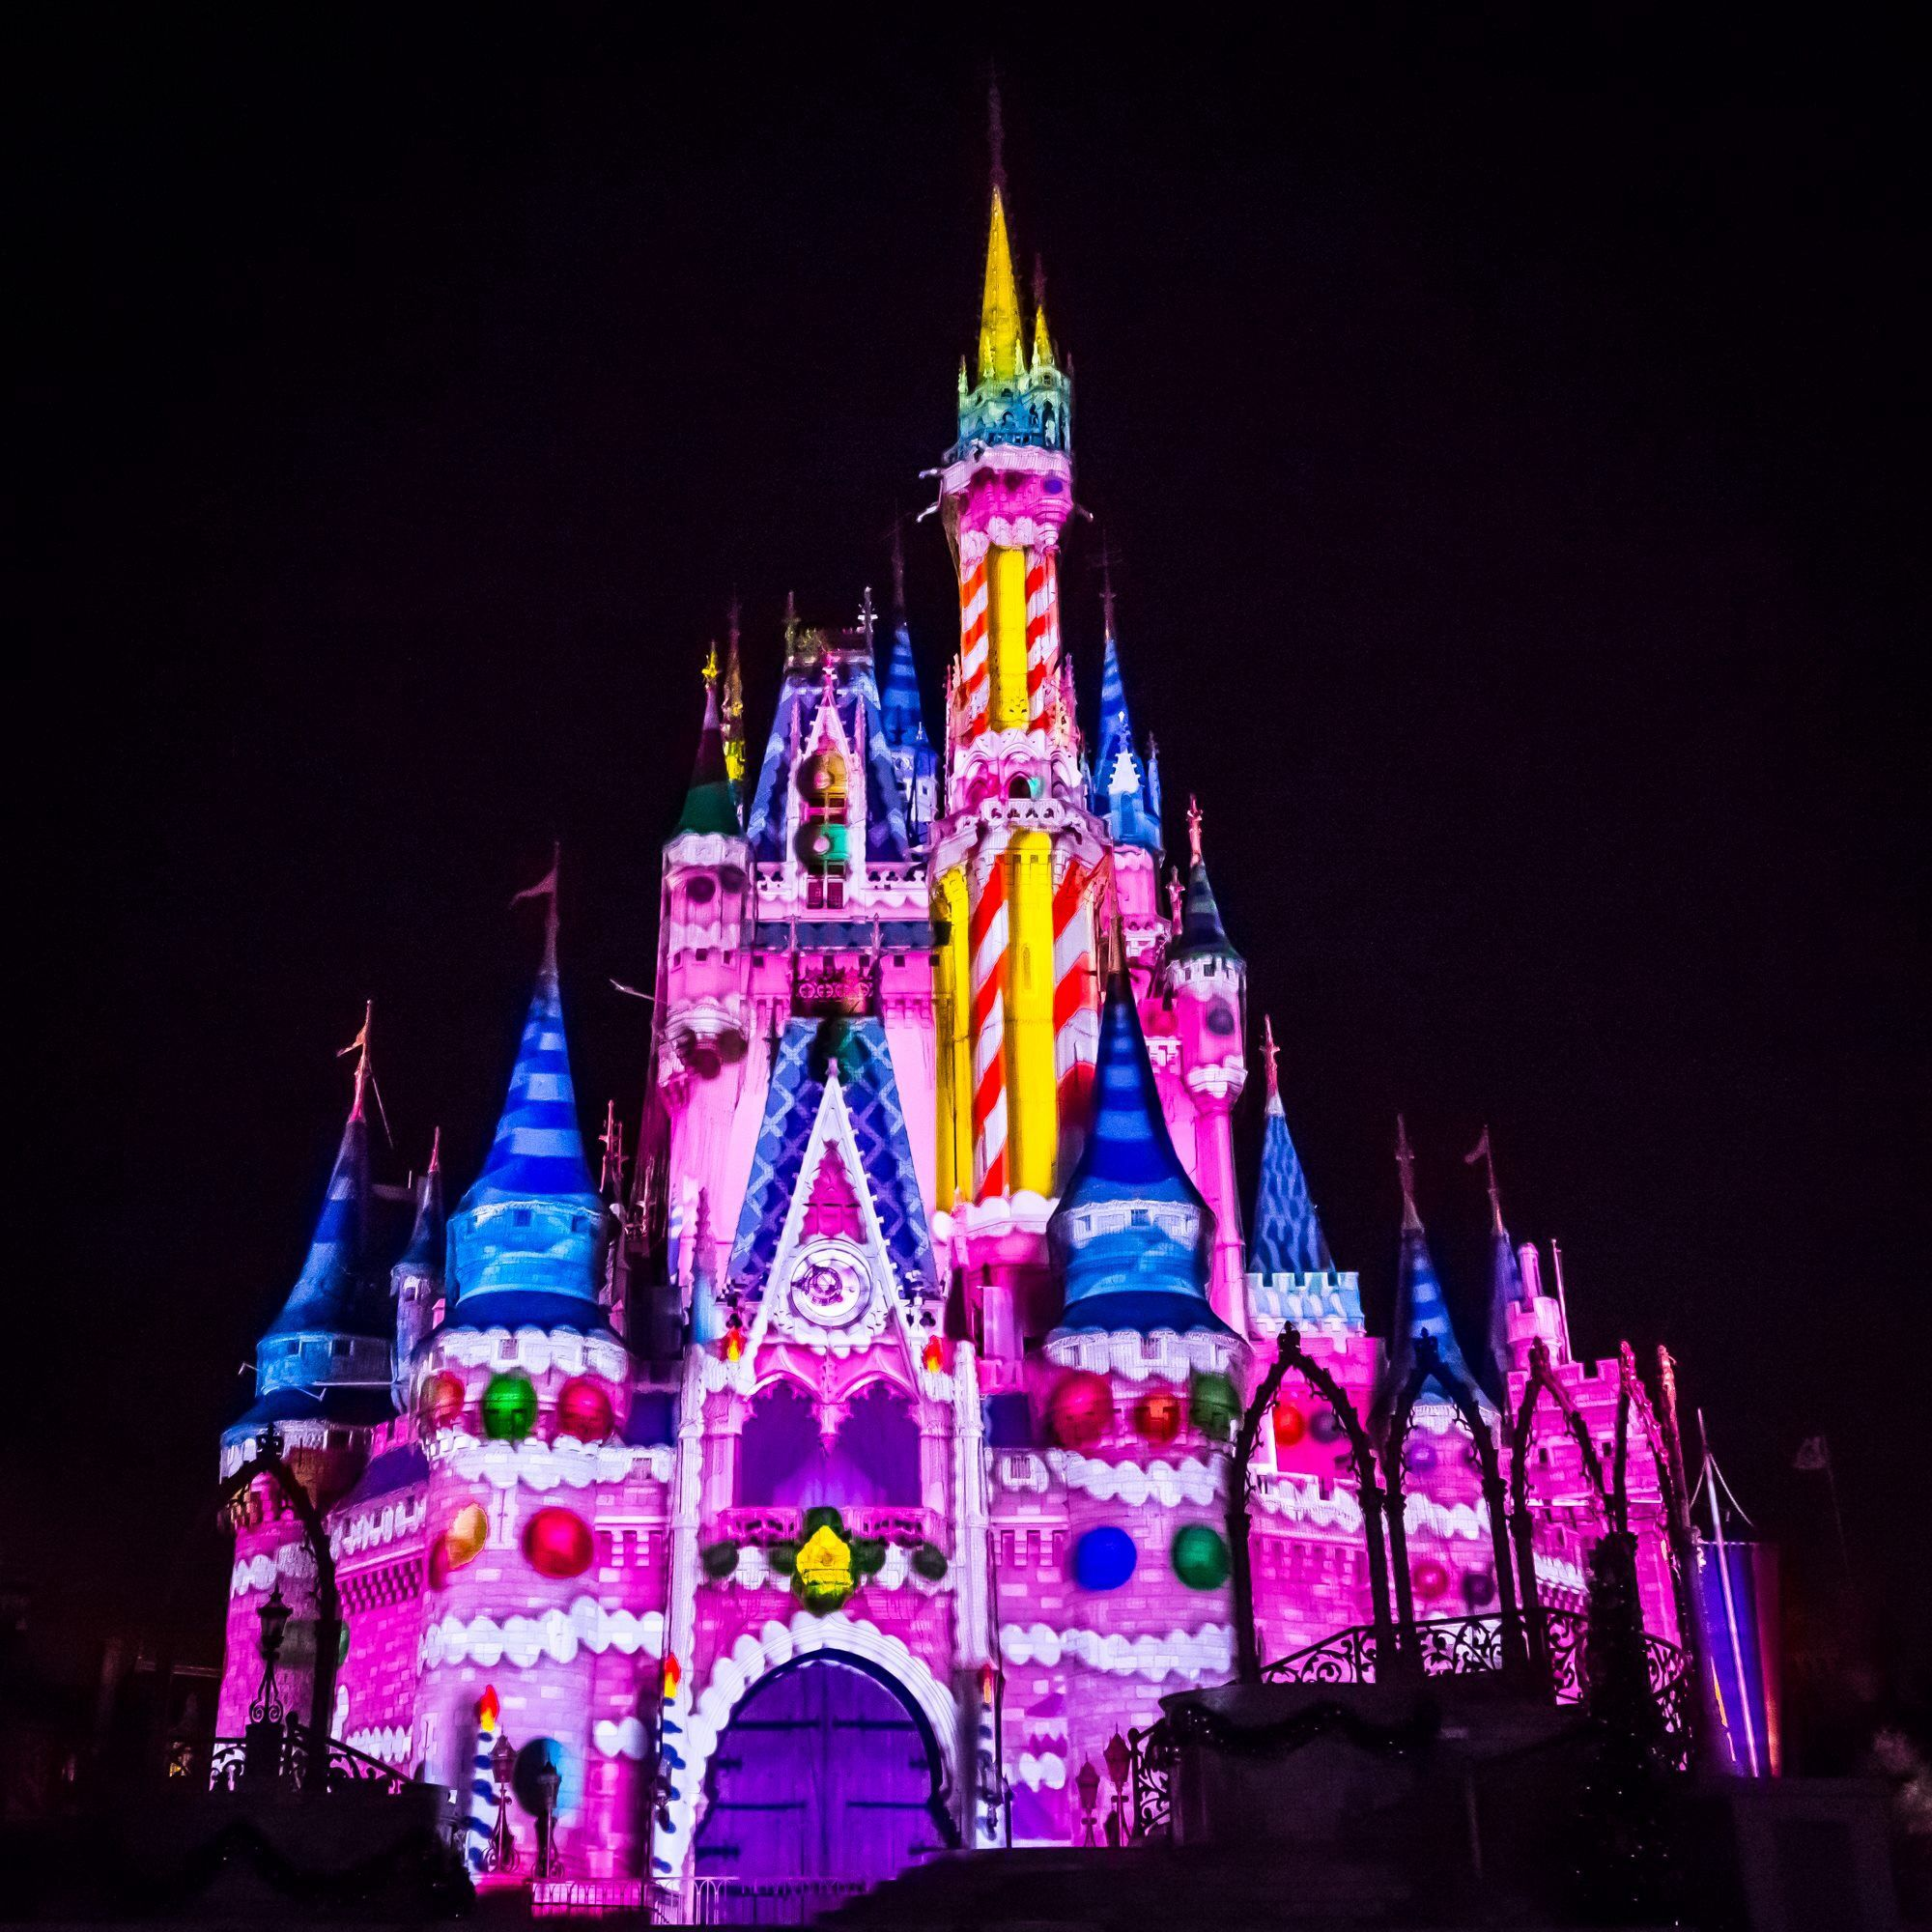 Cinderella Castle Candy Castle Wdw Disney Disney Castle Disney World Magic Kingdom Beautiful Castles